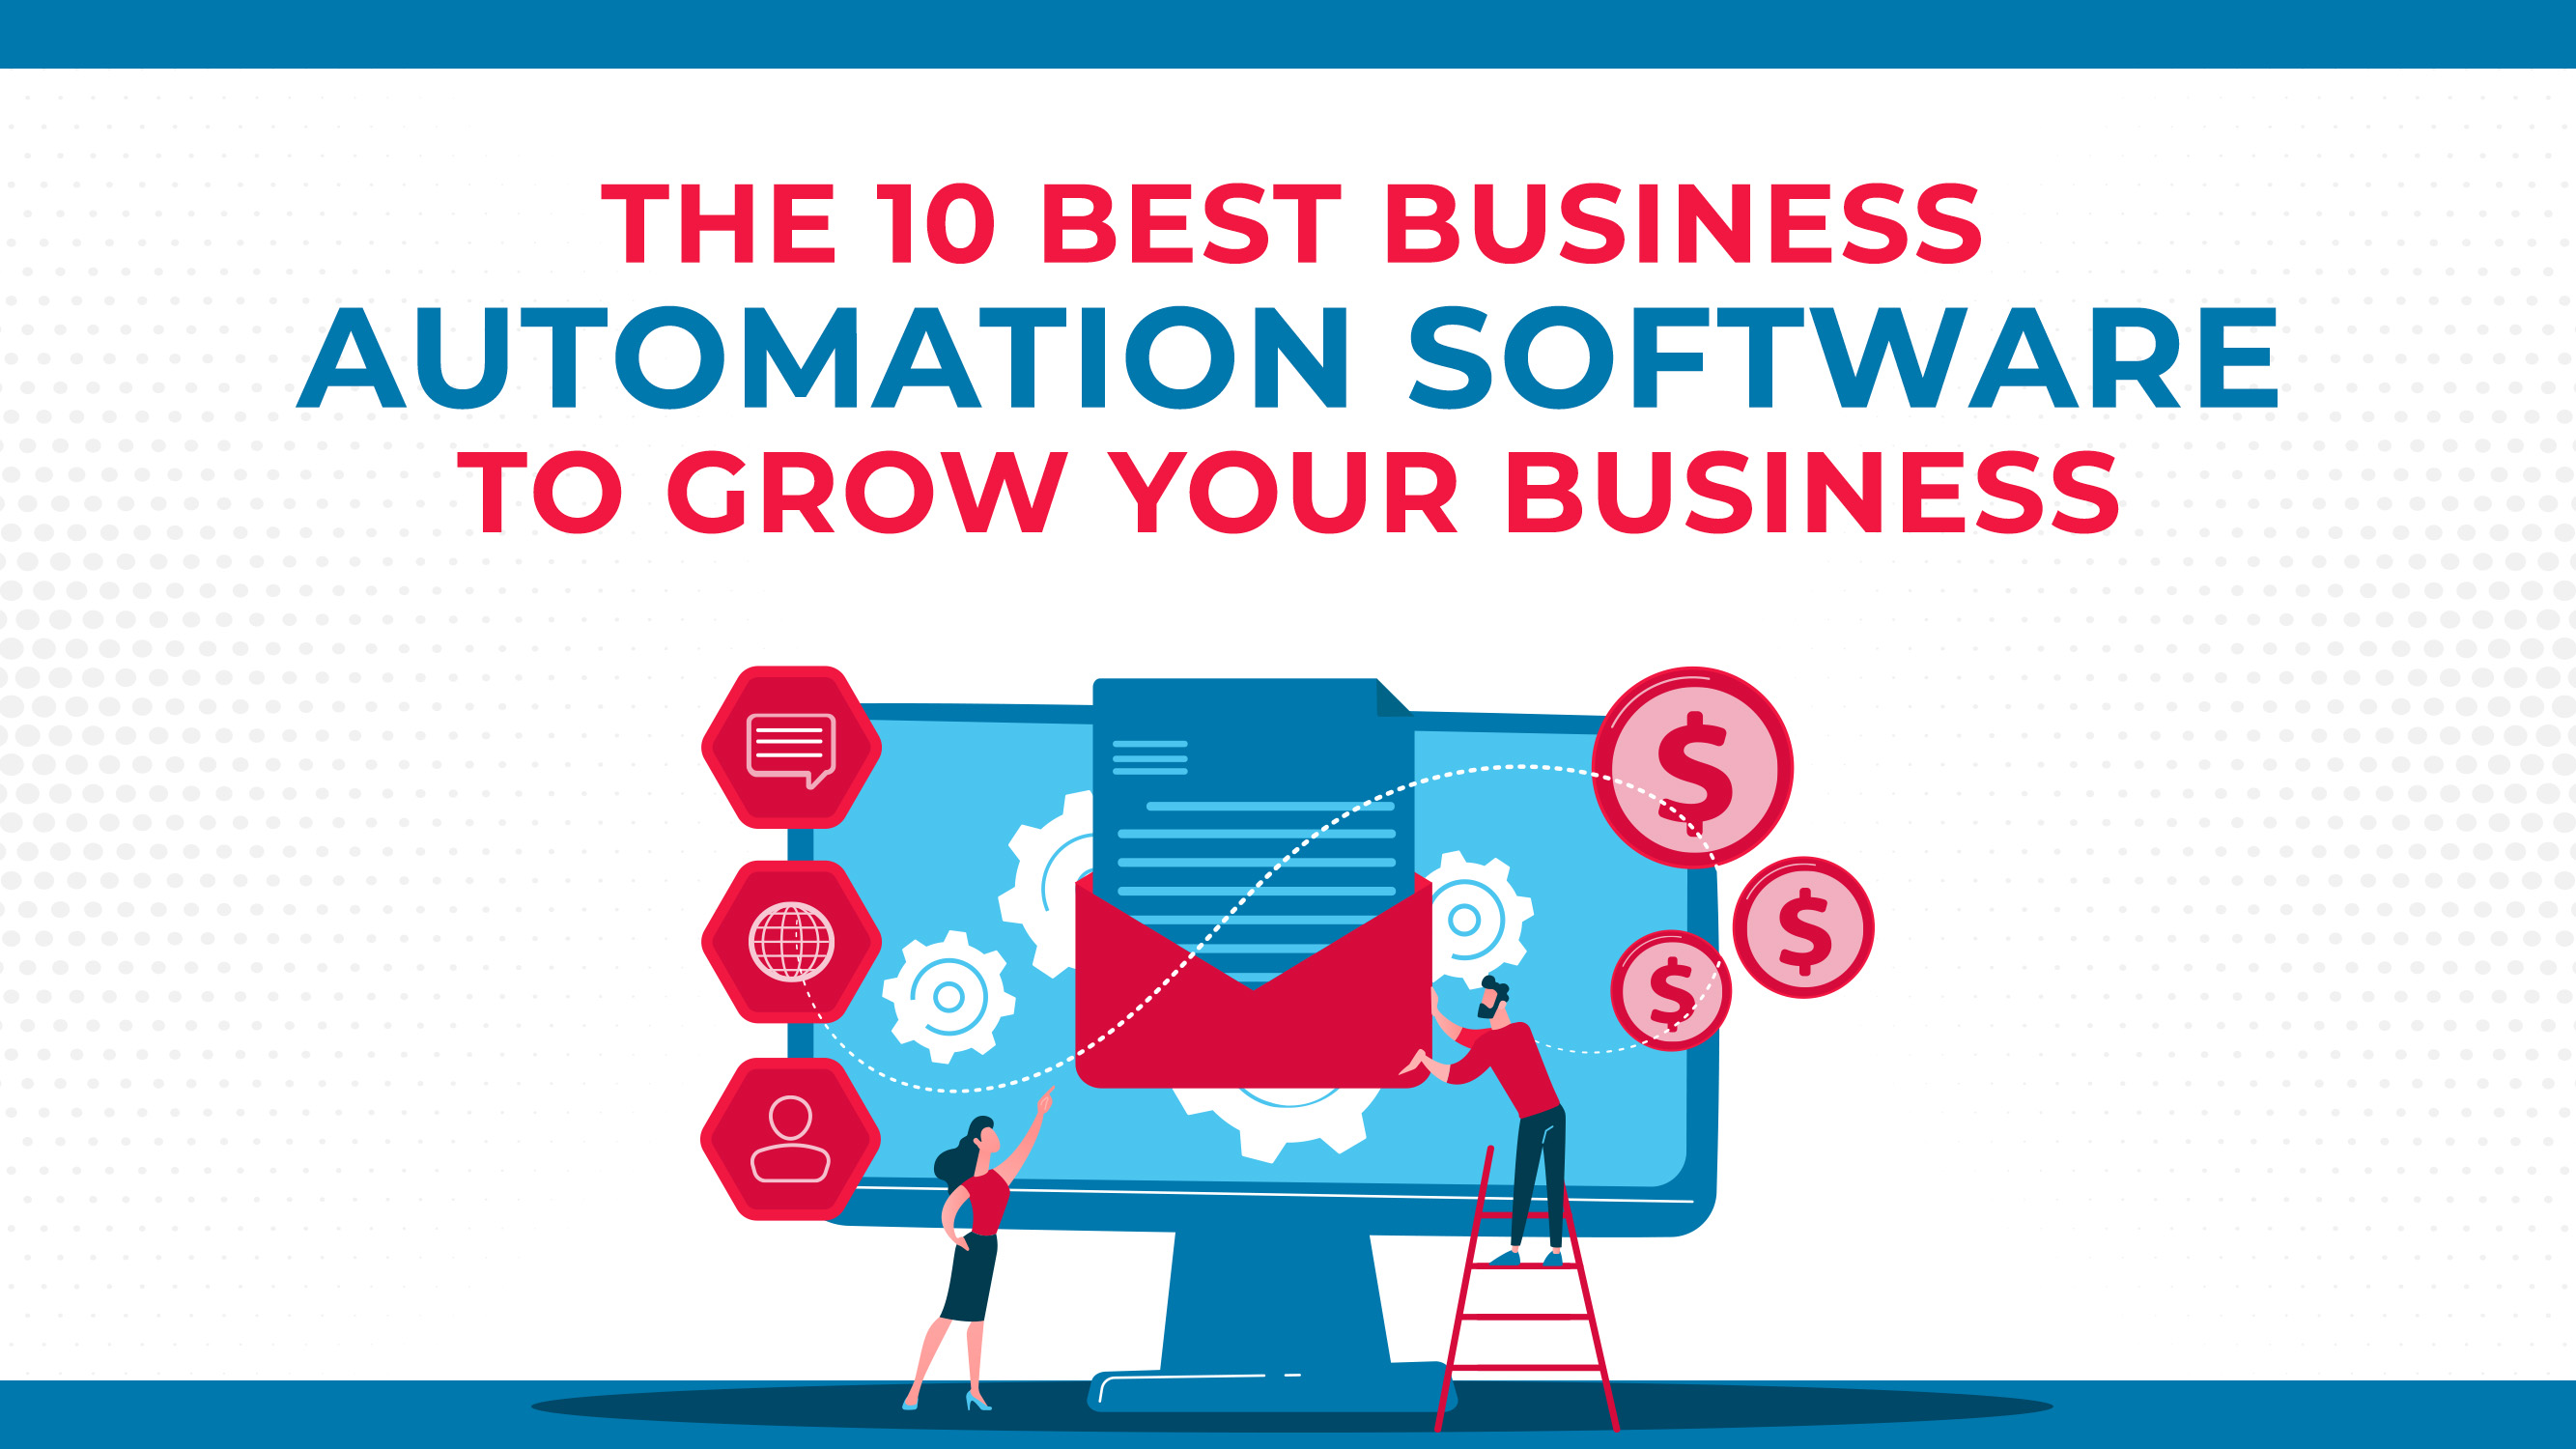 The 10 Best Business Automation Software To Grow Your Business